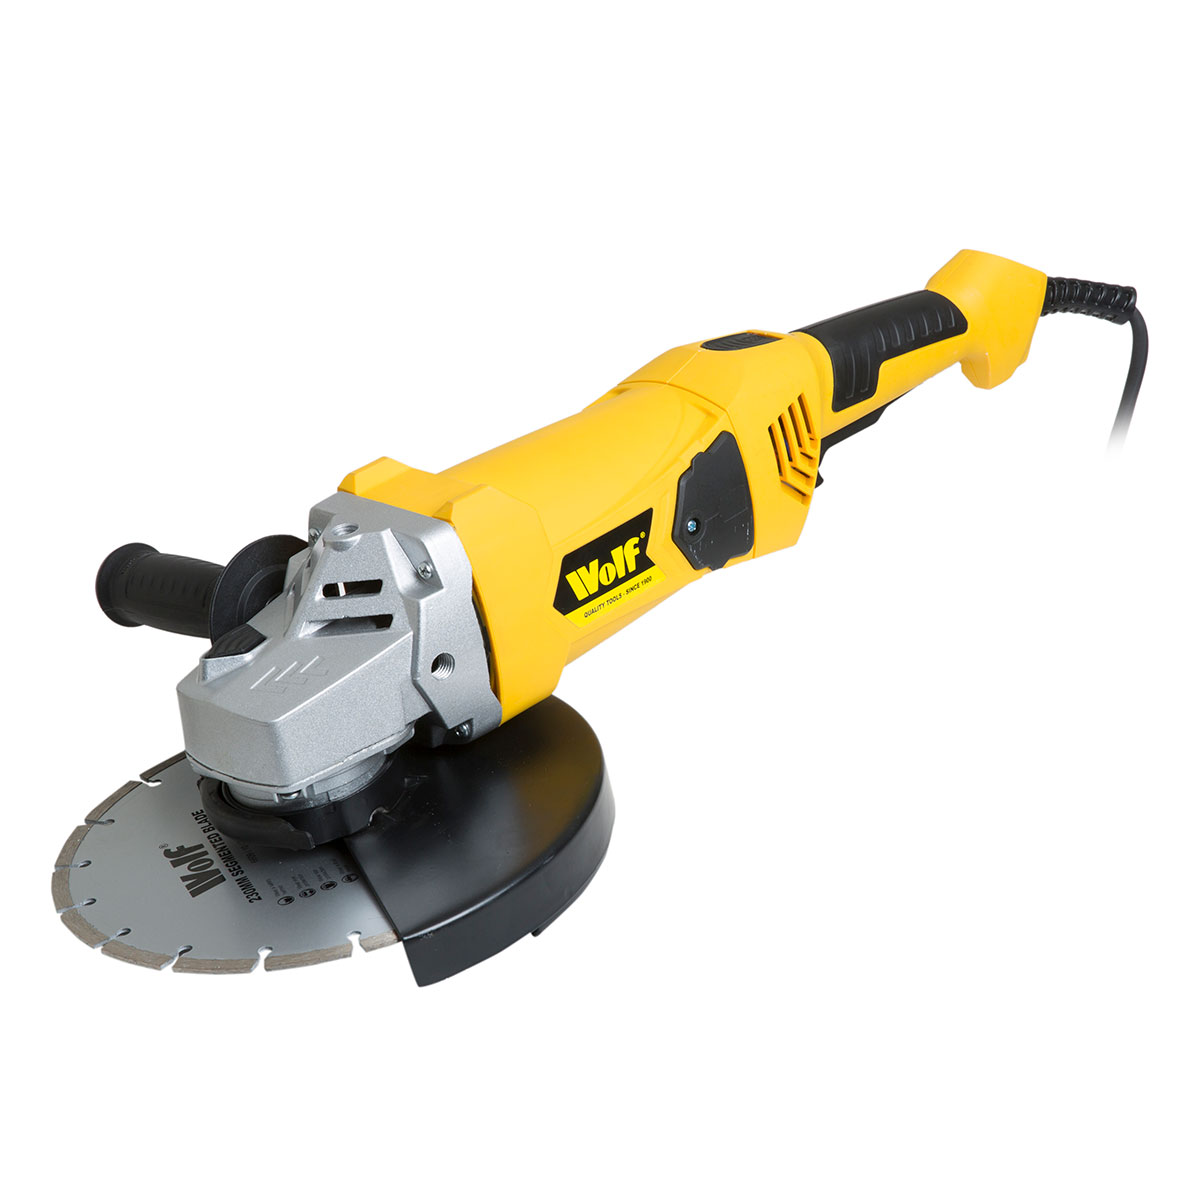 Wolf 2300w Angle Grinder With 230mm 9 Disc